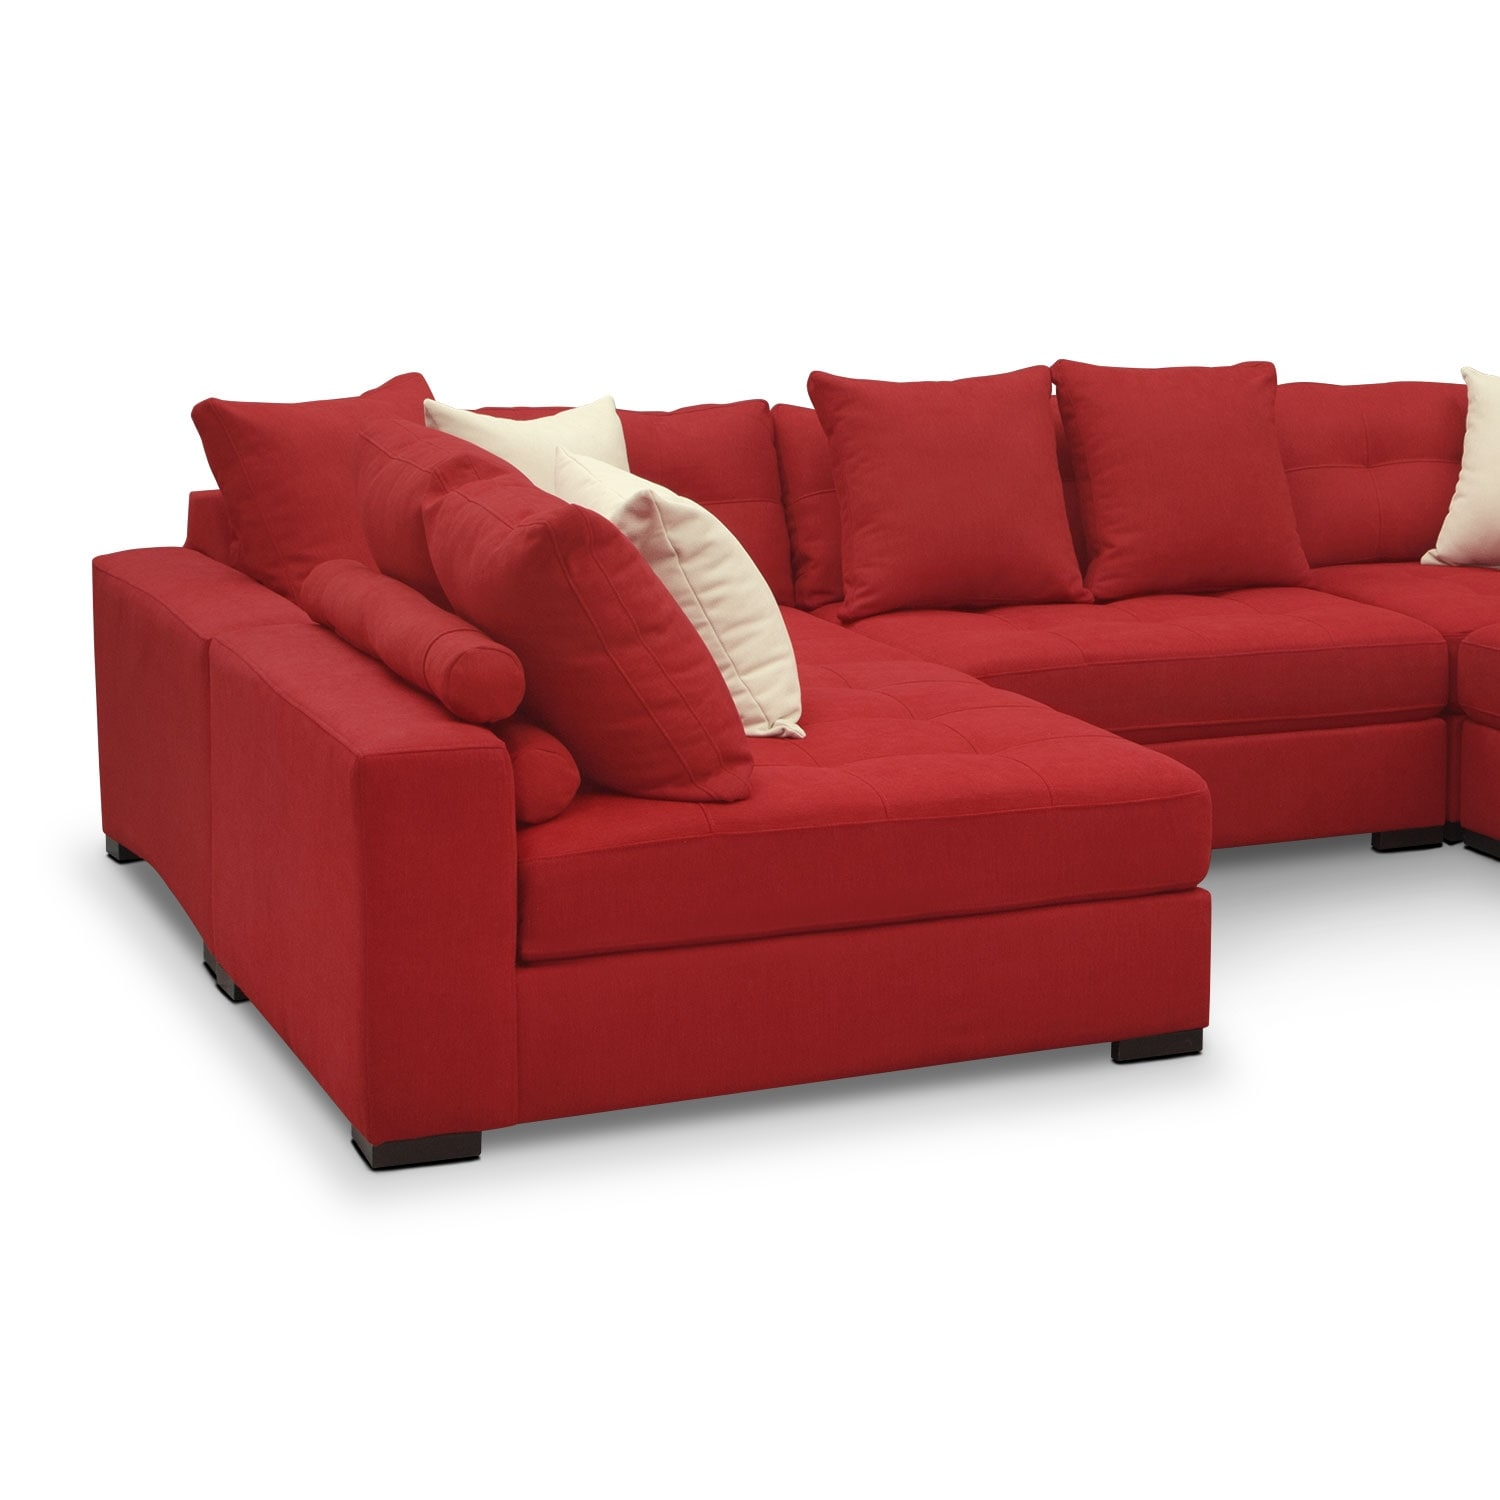 6 Piece Sectional Sofa Traverso Leather 6 Piece Chaise Modular